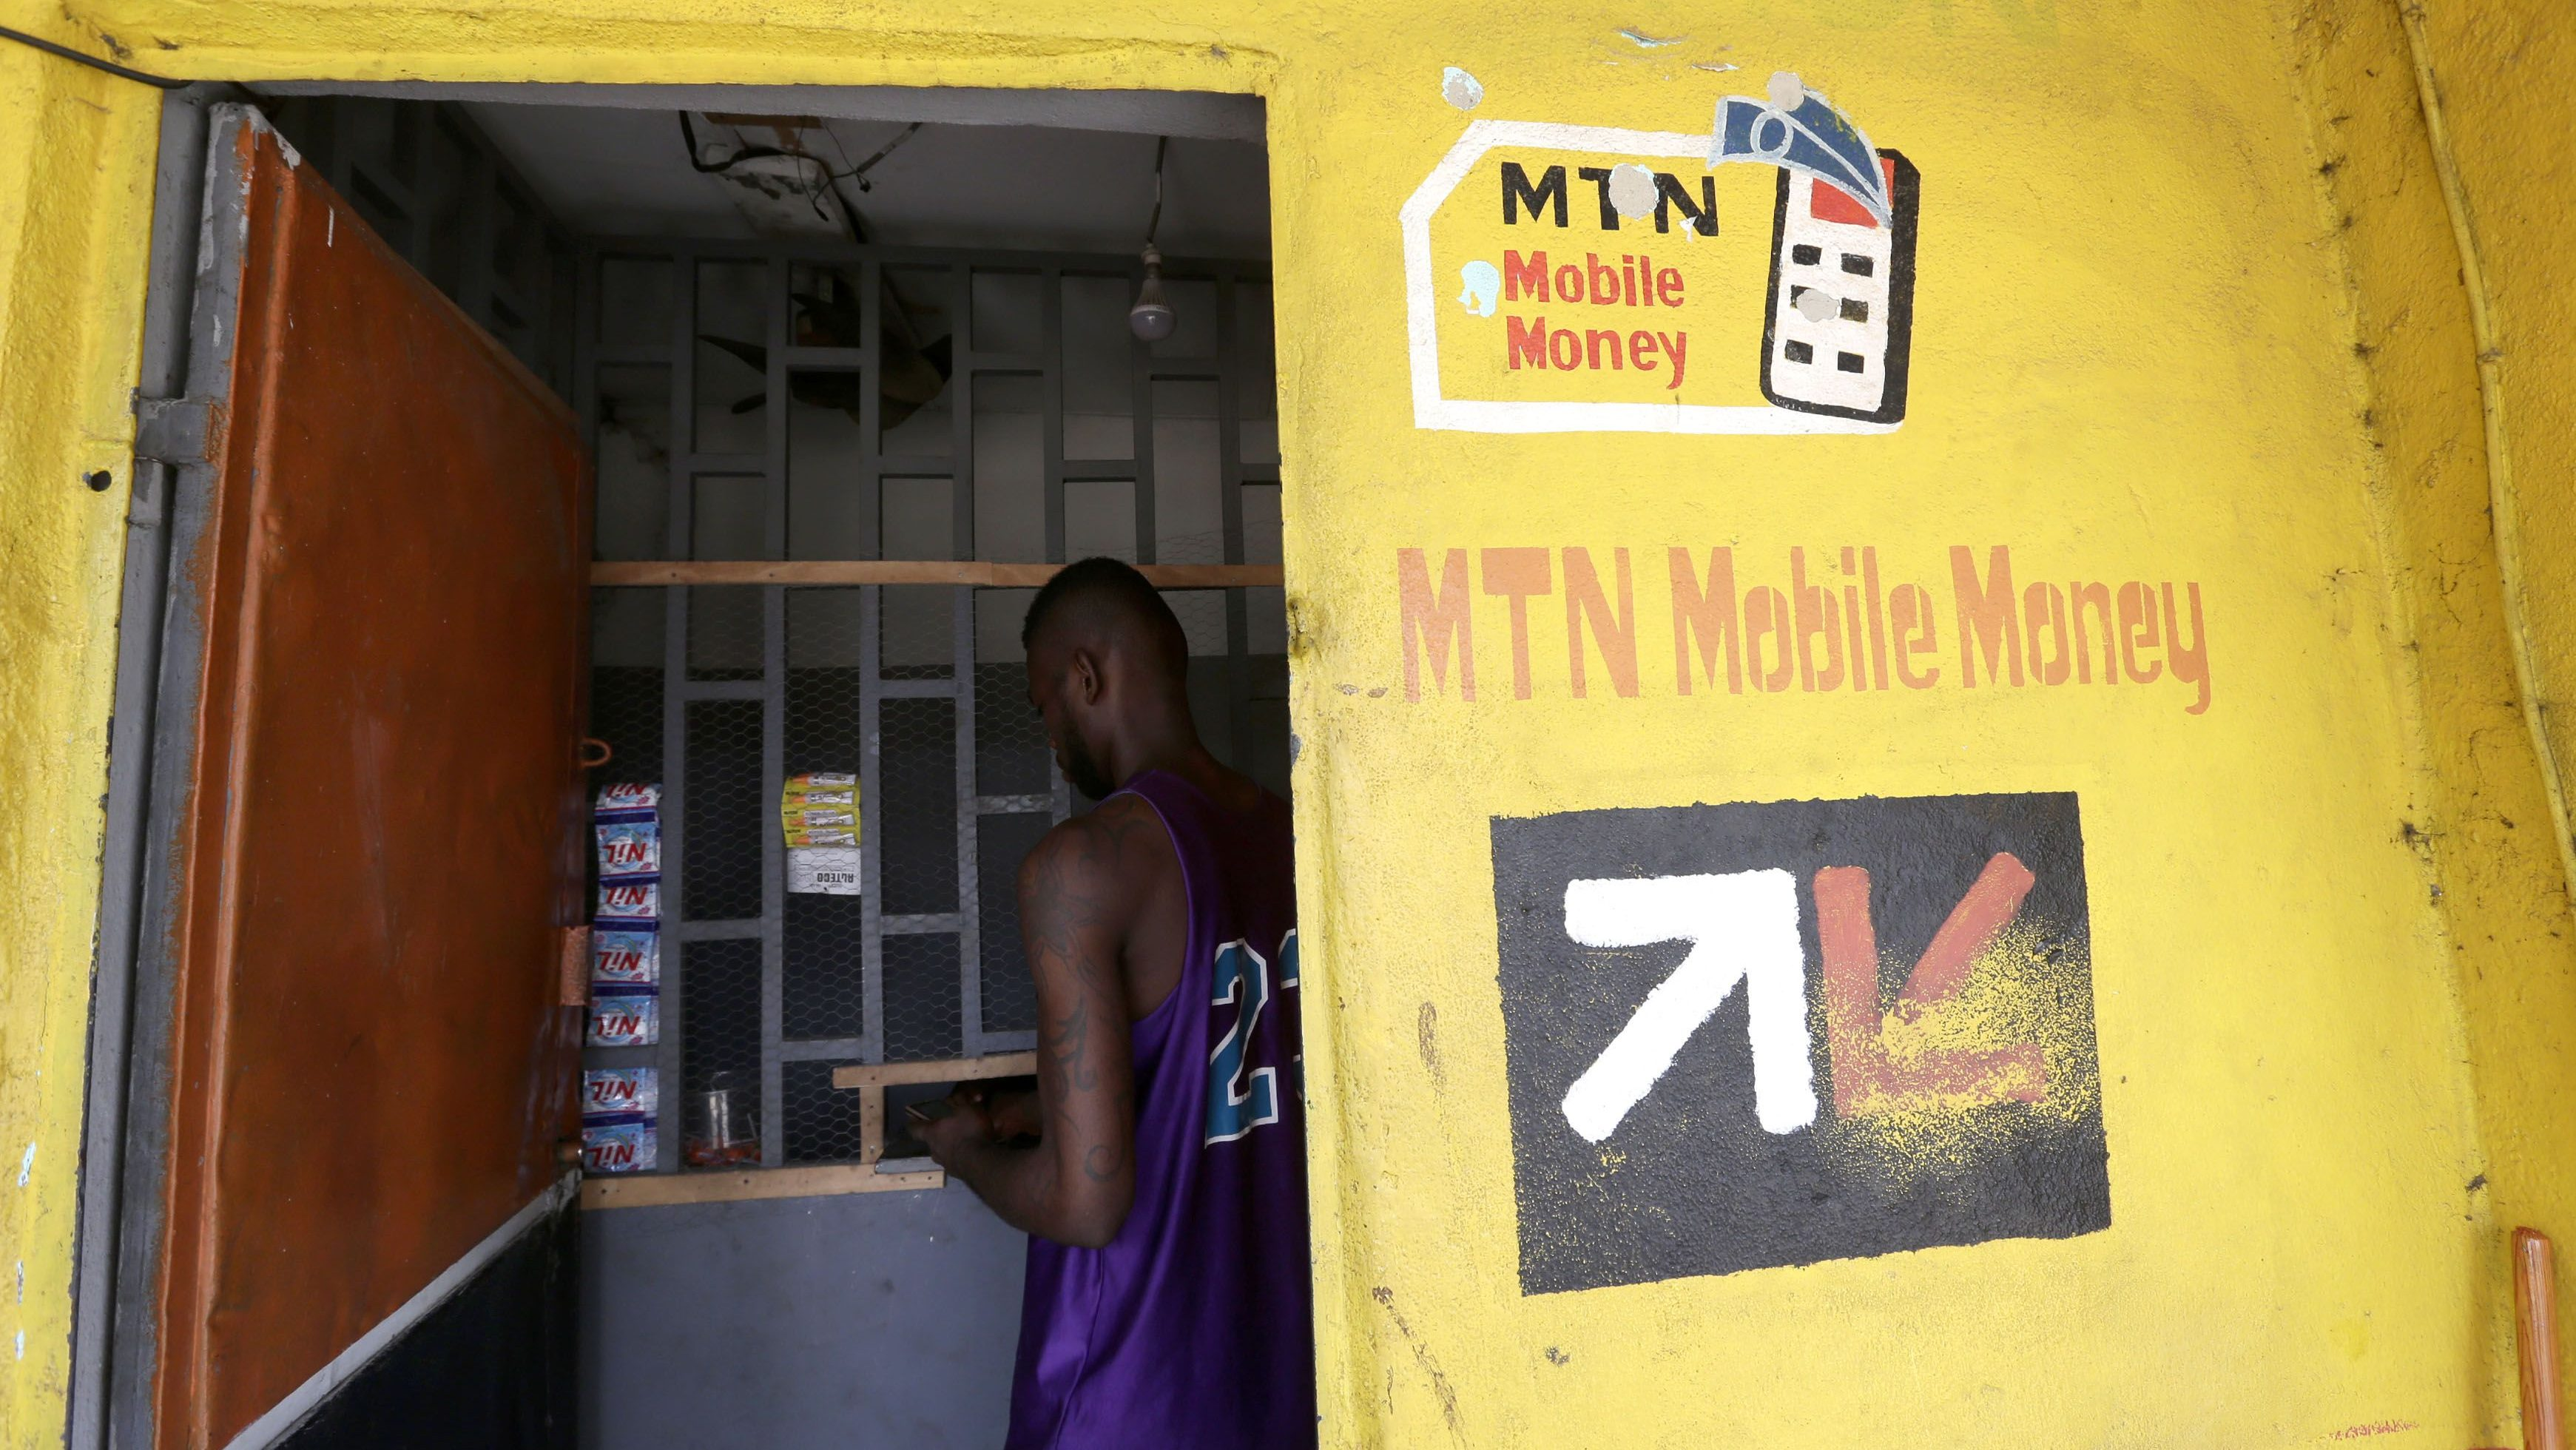 A man withdraws money at an MTN Money cashier booth, in Abidjan, Ivory Coast, 10 May 2017. This mobile phone-based payment system allows customers to use their phones to pay their bills or to transfer funds to any other phone subscriber.